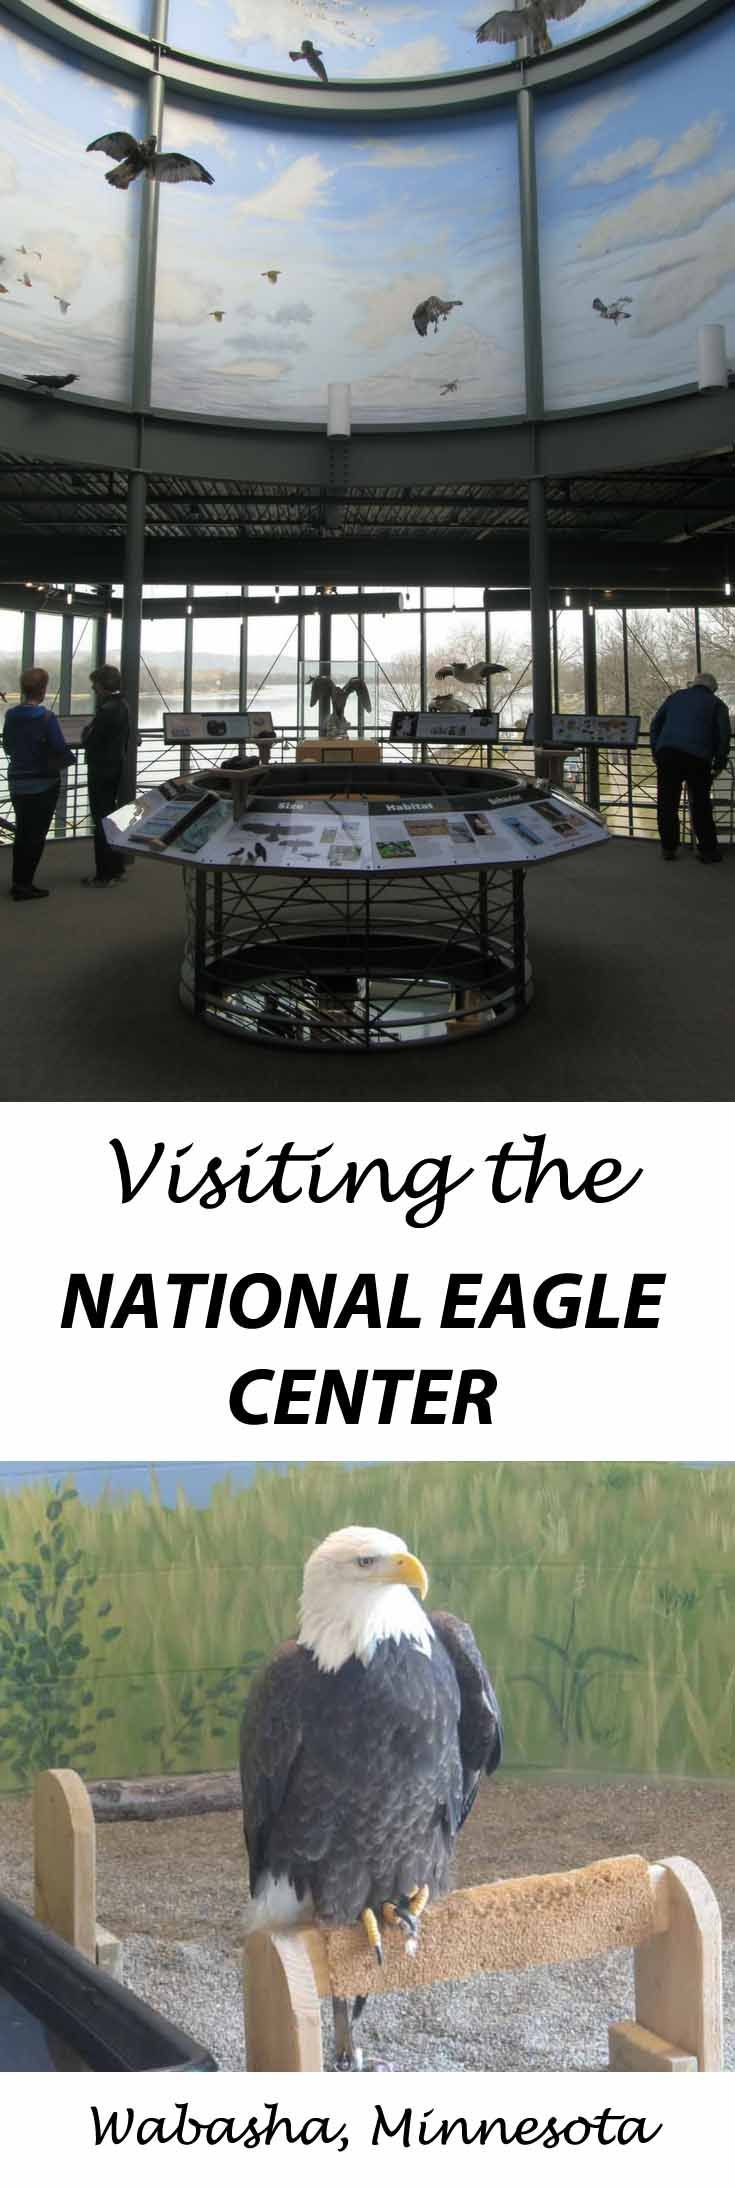 Visiting the National Eagle Center in Wabasha, Minnesota. See live eagle programs and discover many hands-on exhibits at the National Eagle Center, which is located along the shore of the Mississippi River. Check out Minnesota Wonders to find more unique Minnesota travel destinations and family fun! https://minnesotawonders.com